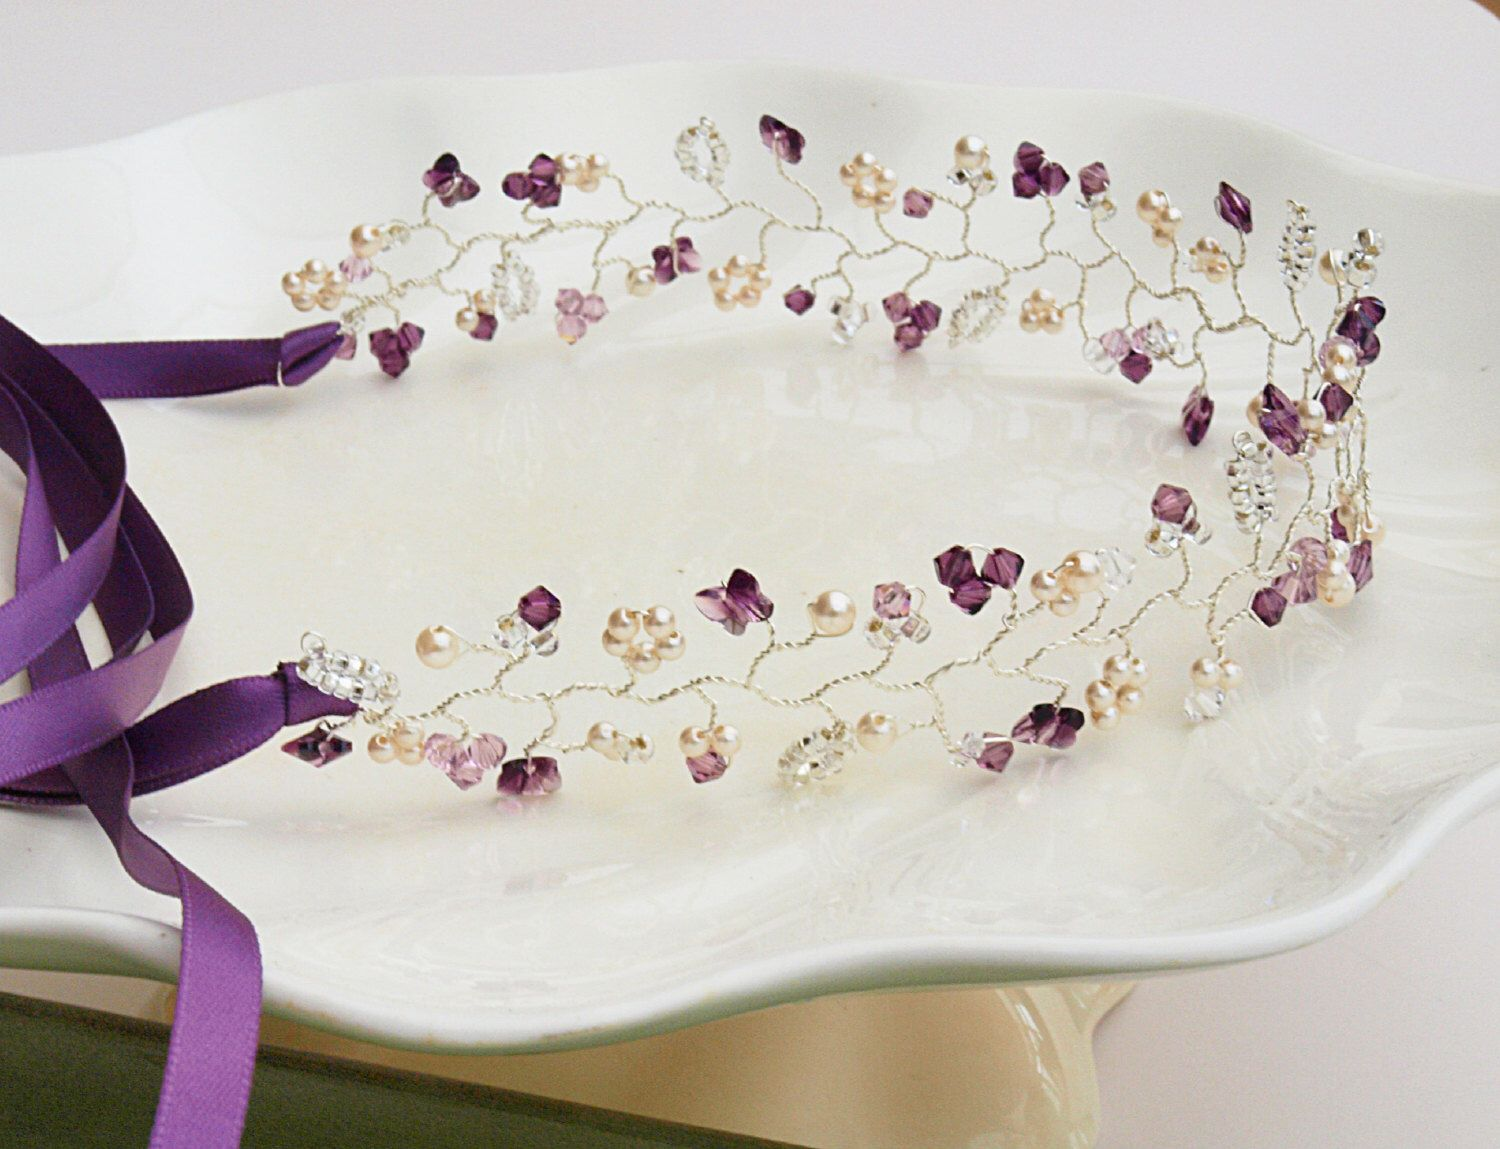 Butterfly hair accessories for weddings uk - Items Similar To Flutter Purple Butterfly Hair Vine Pearl Crystal Headdress Wedding Tiara Bun Wrap Bridal Hair Accessories Amethyst Bridesmaid Boho Uk Made